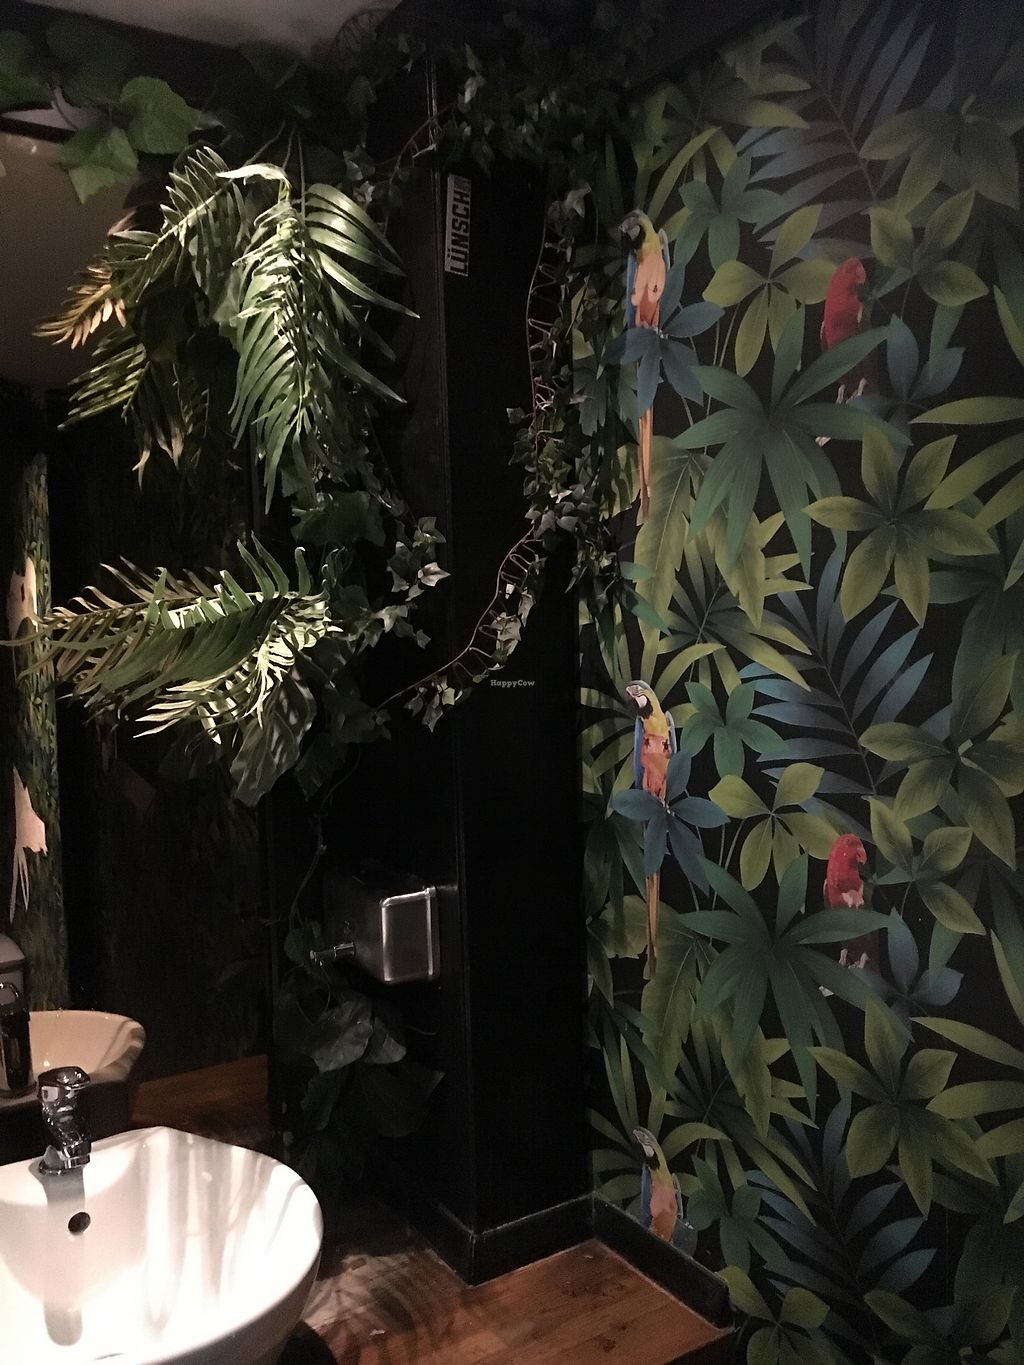 """Photo of Lucky Pig at Paradise Palms  by <a href=""""/members/profile/NicolaScott"""">NicolaScott</a> <br/>the toilet wallpaper  <br/> September 3, 2017  - <a href='/contact/abuse/image/69294/300380'>Report</a>"""